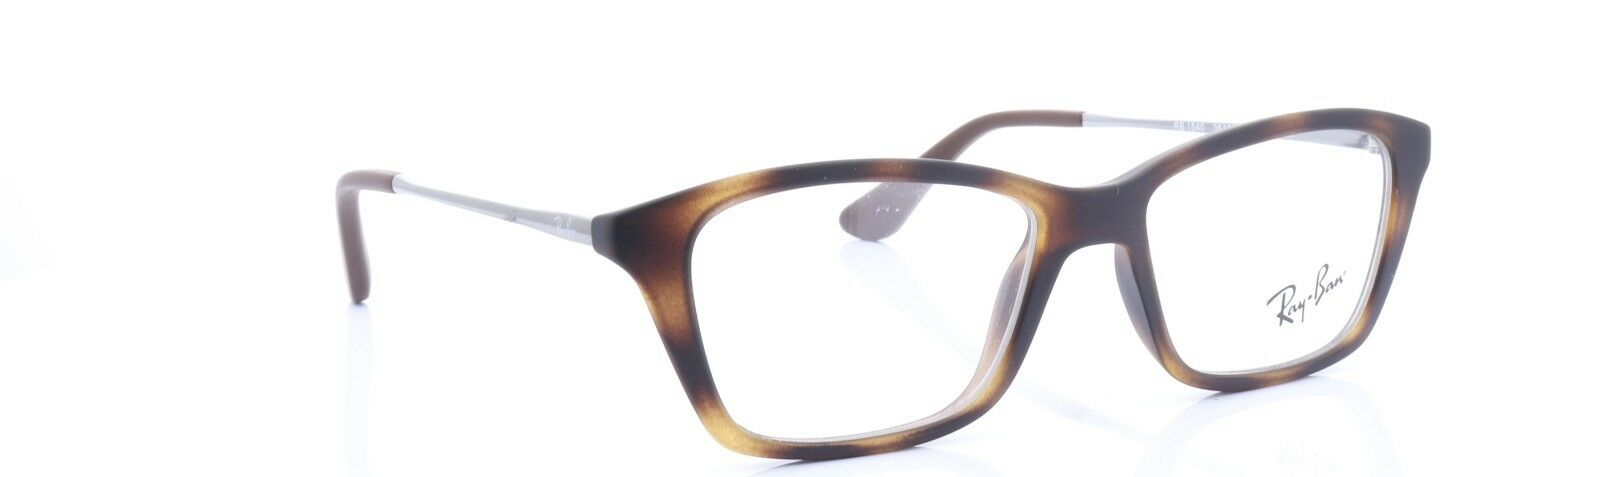 Ray Ban Eyeglasses Junior RB1540 3616 RX-ABLE